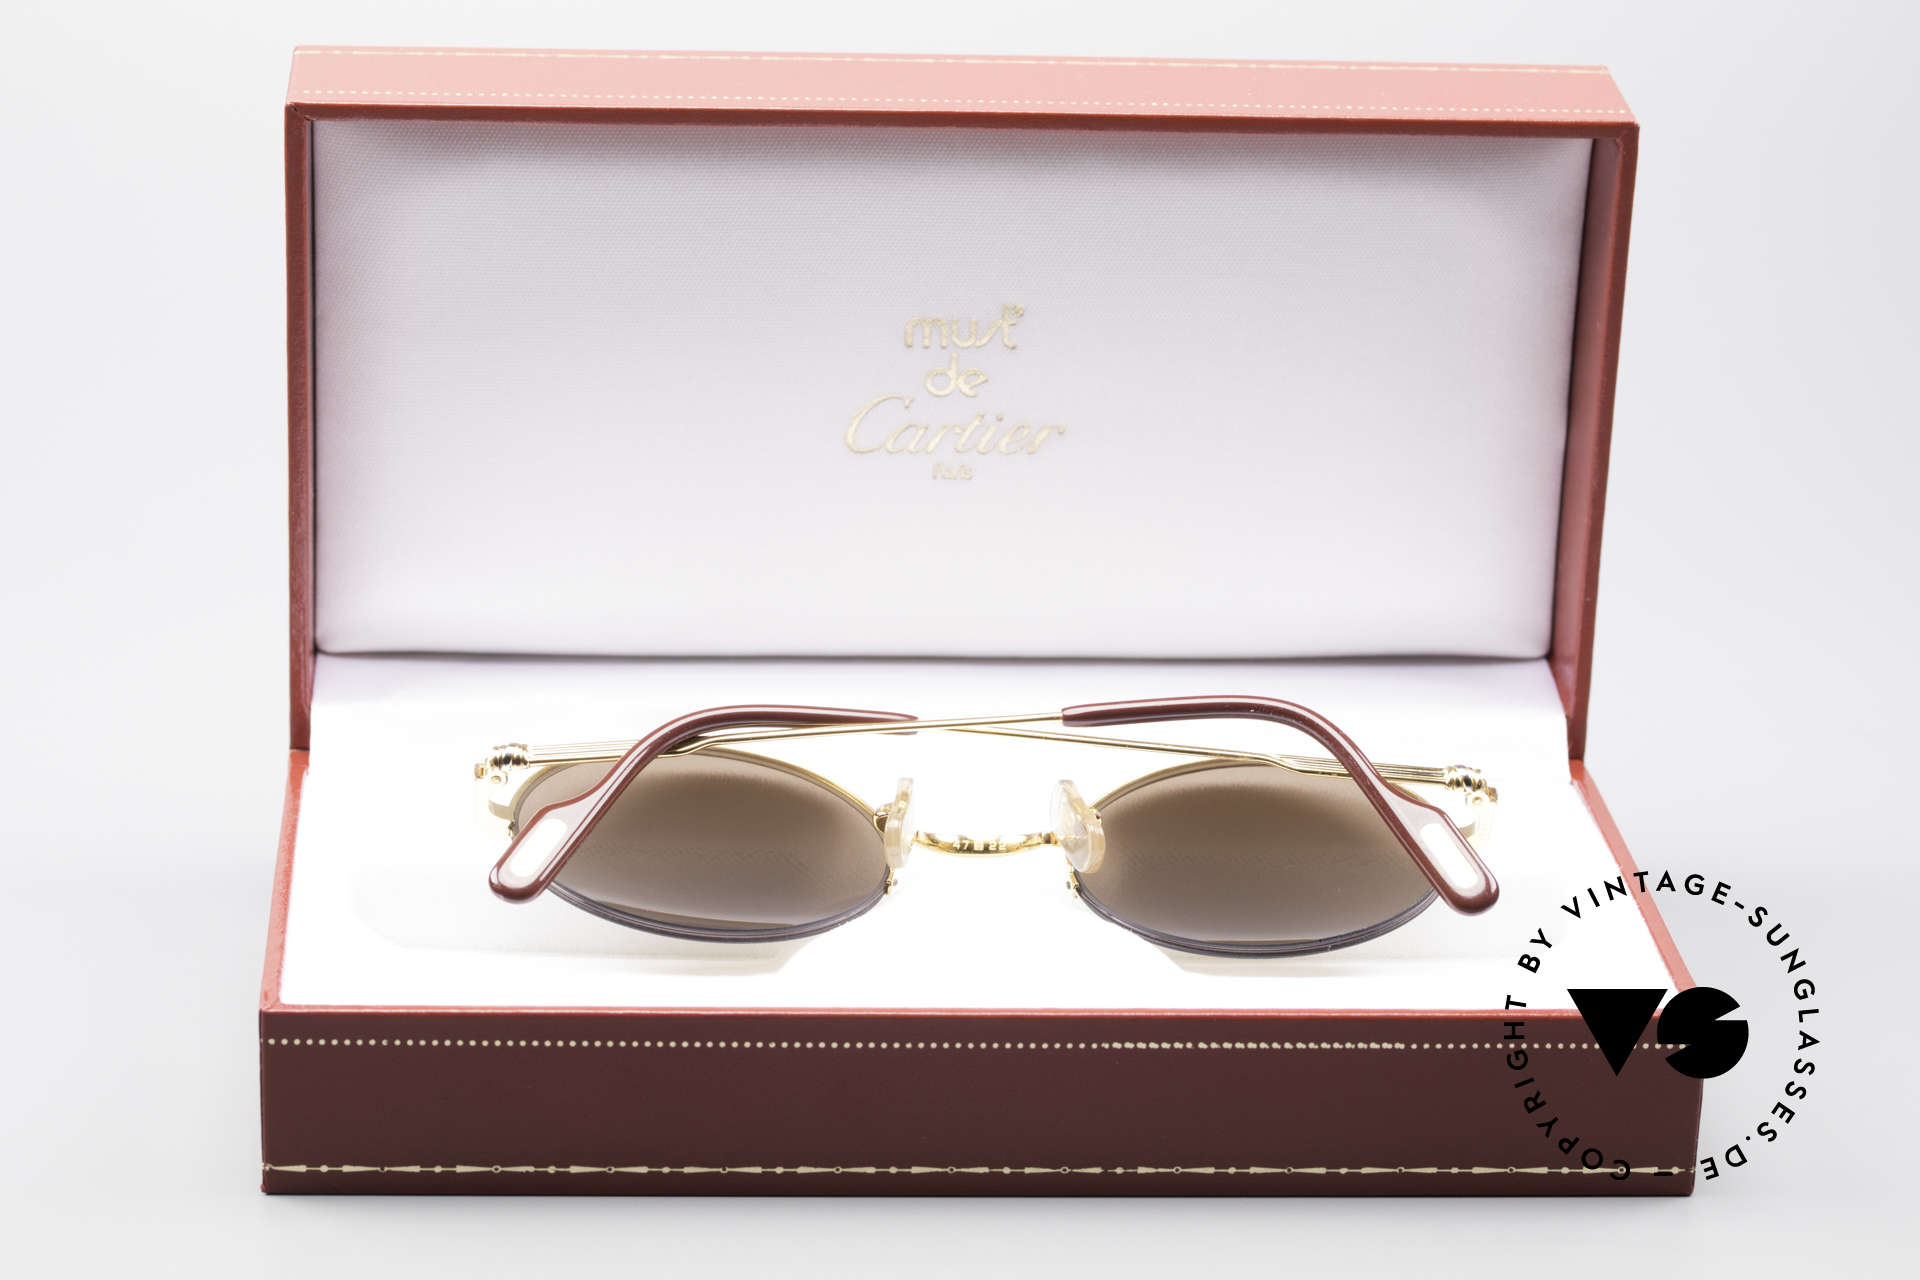 Cartier Mayfair - M Luxury Round Sunglasses, unworn, NOS (sun lenses with CARTIER logos), Made for Men and Women